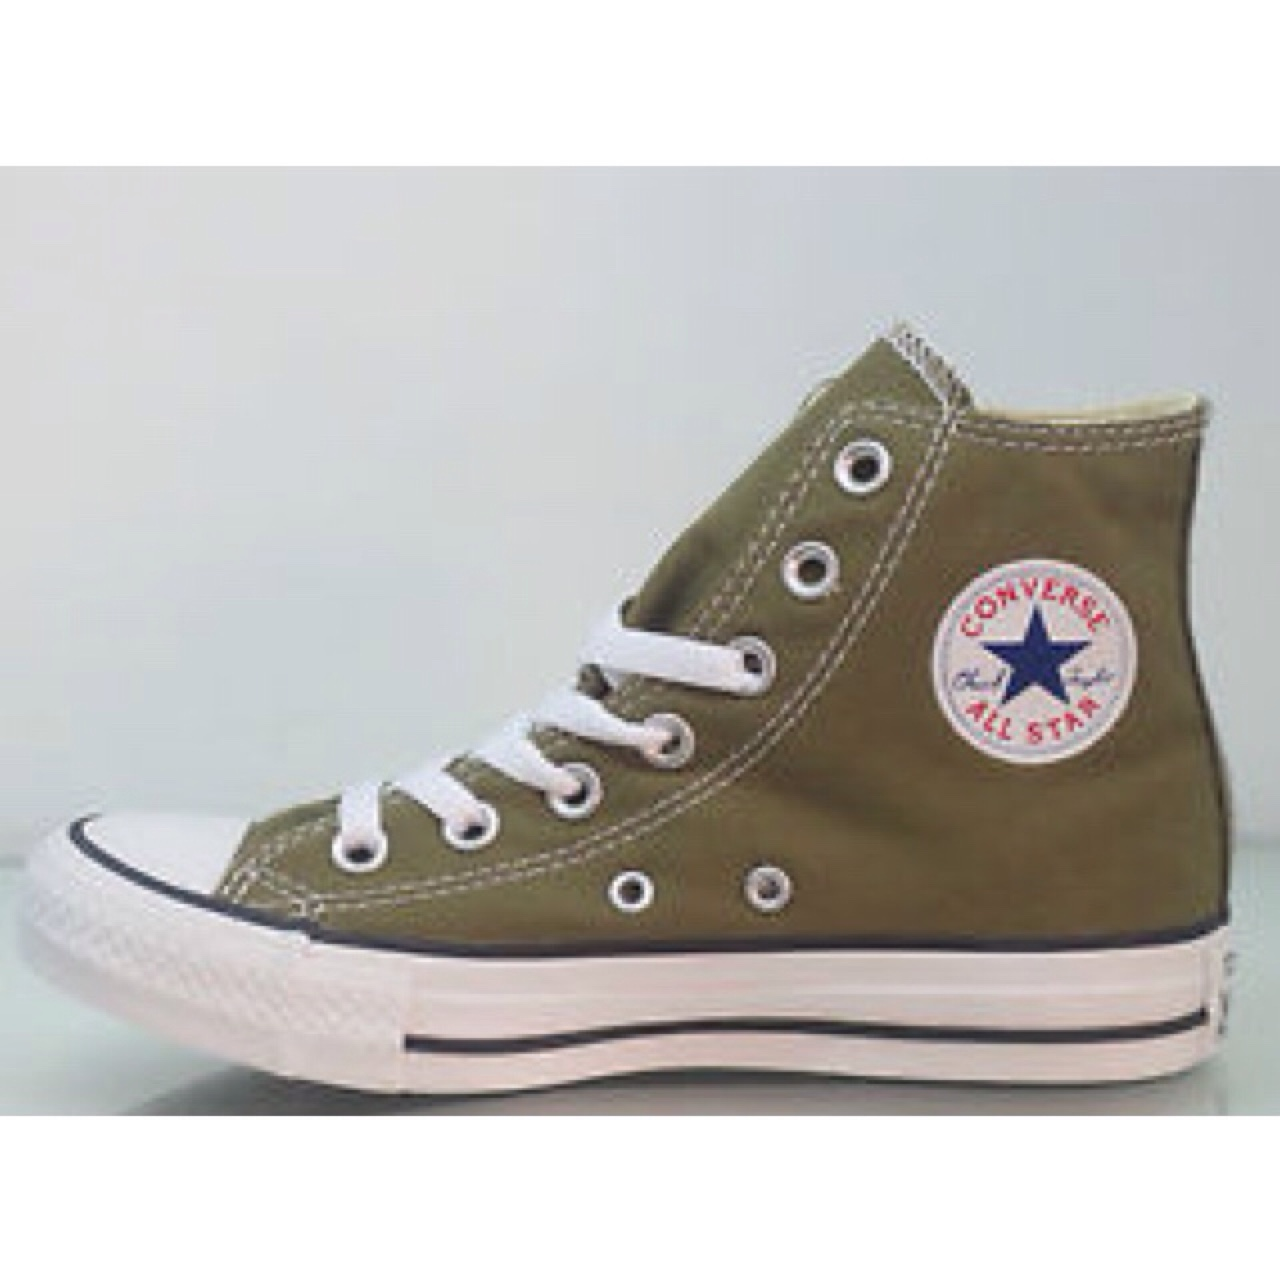 2converse all star alte verdi